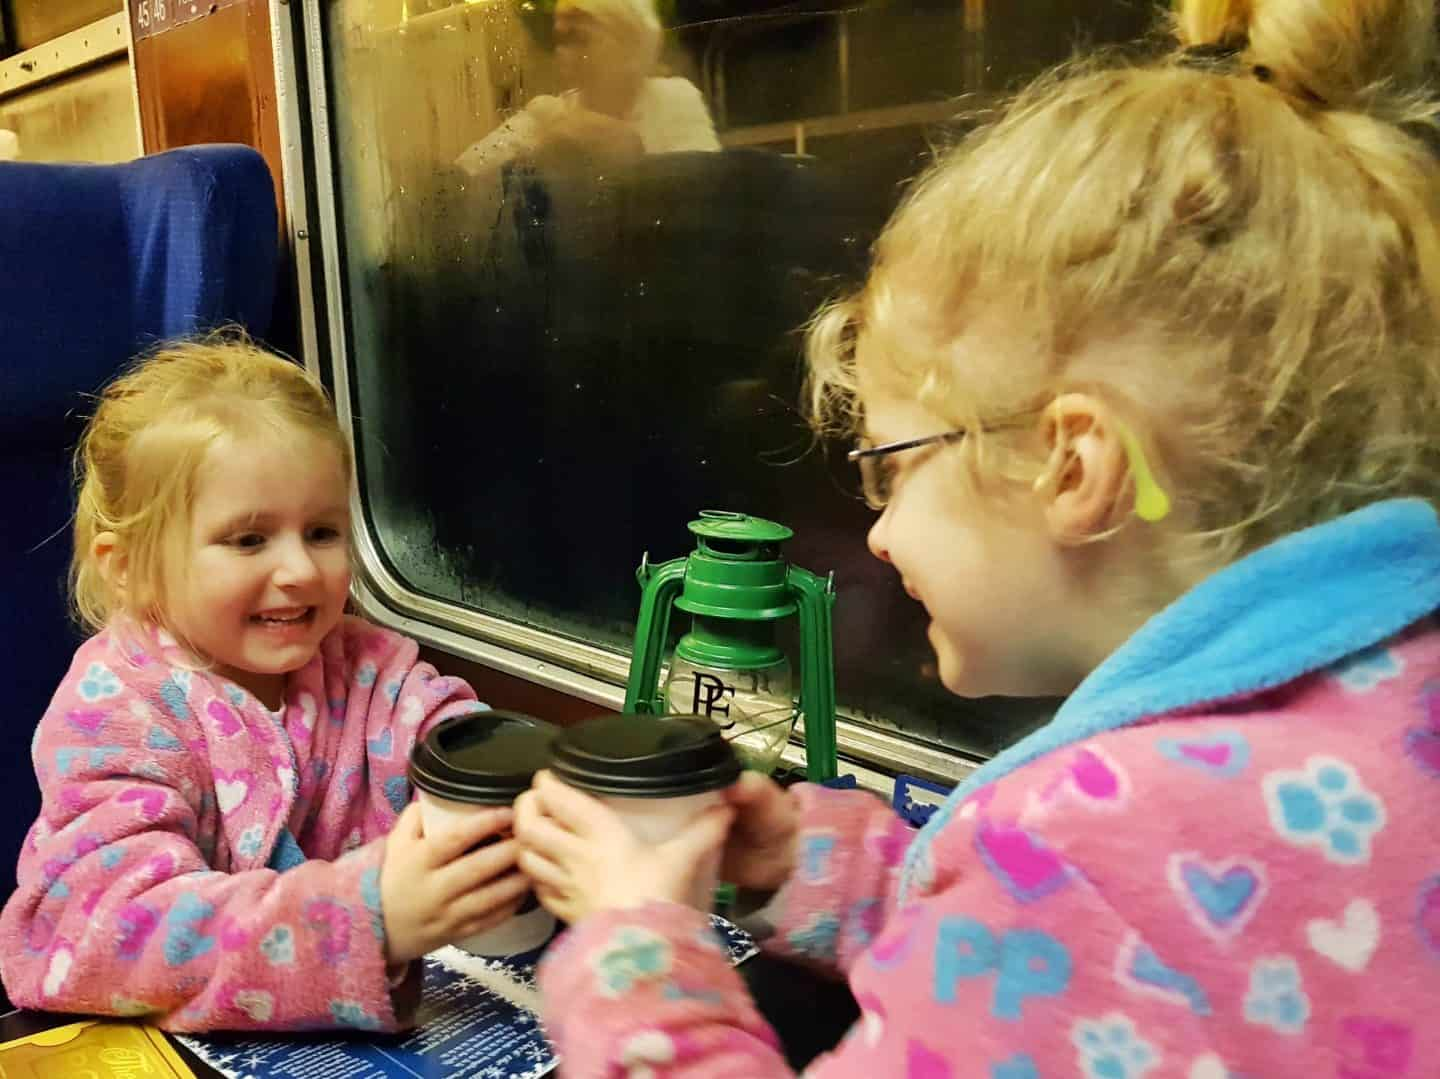 Girls in dressing gowns on train toasting with hot chocolate